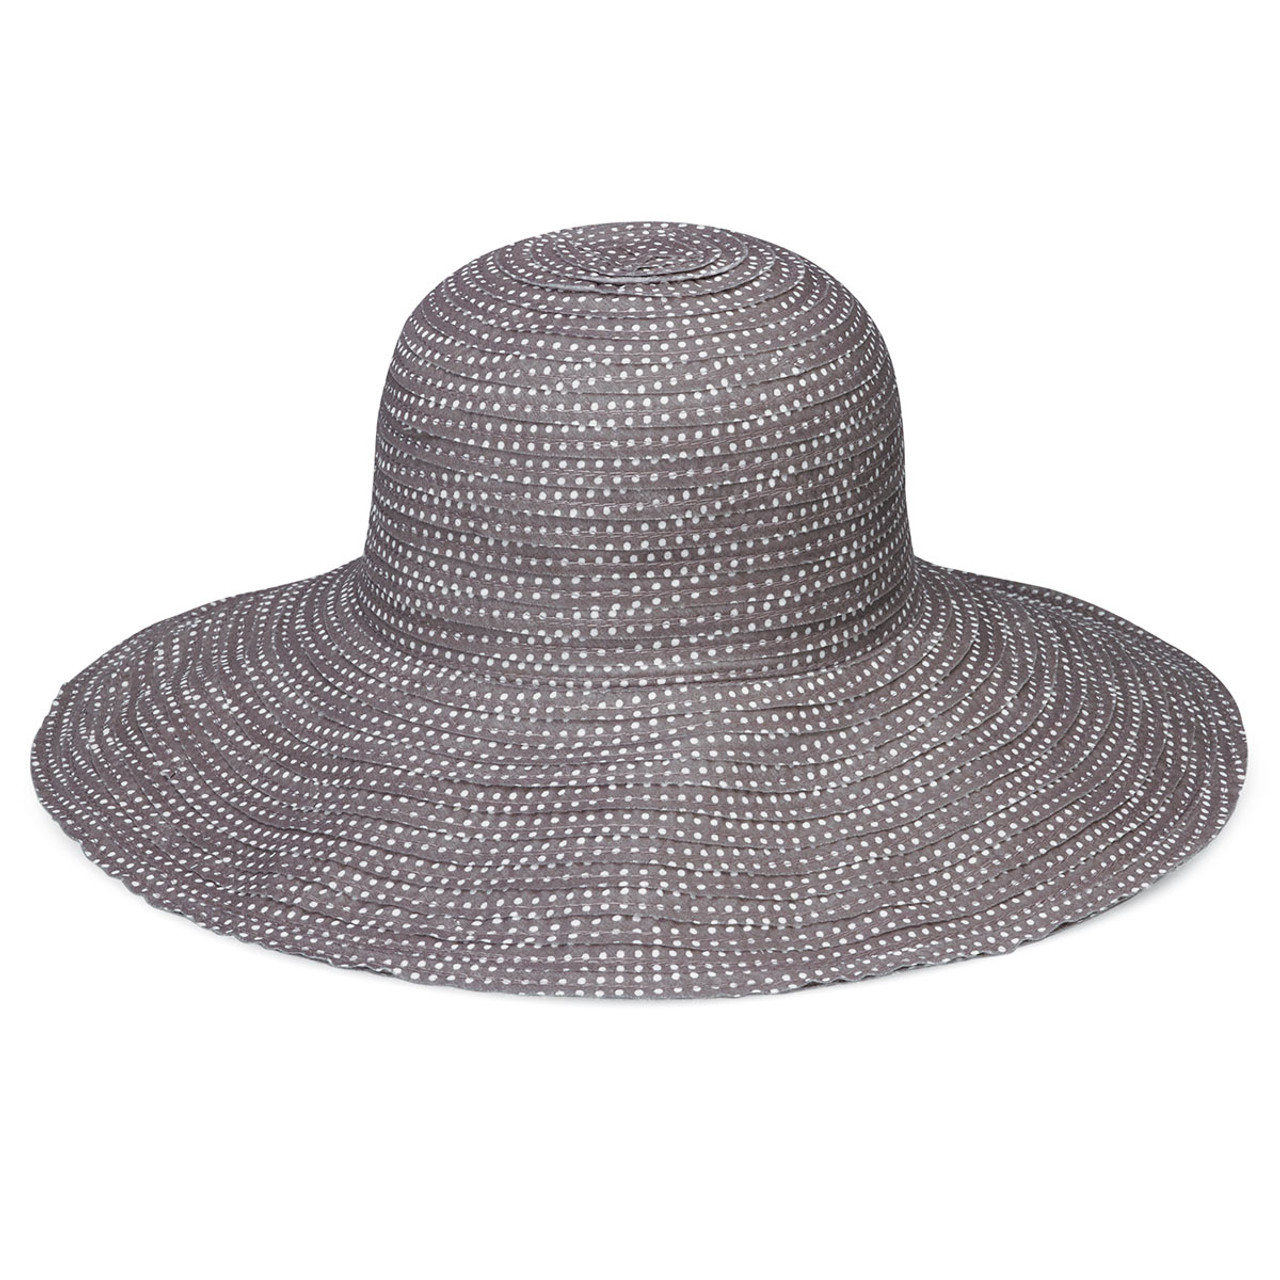 94eea6f567d Womens Wallaroo Scrunchie UPF50+ sun hat grey white dots